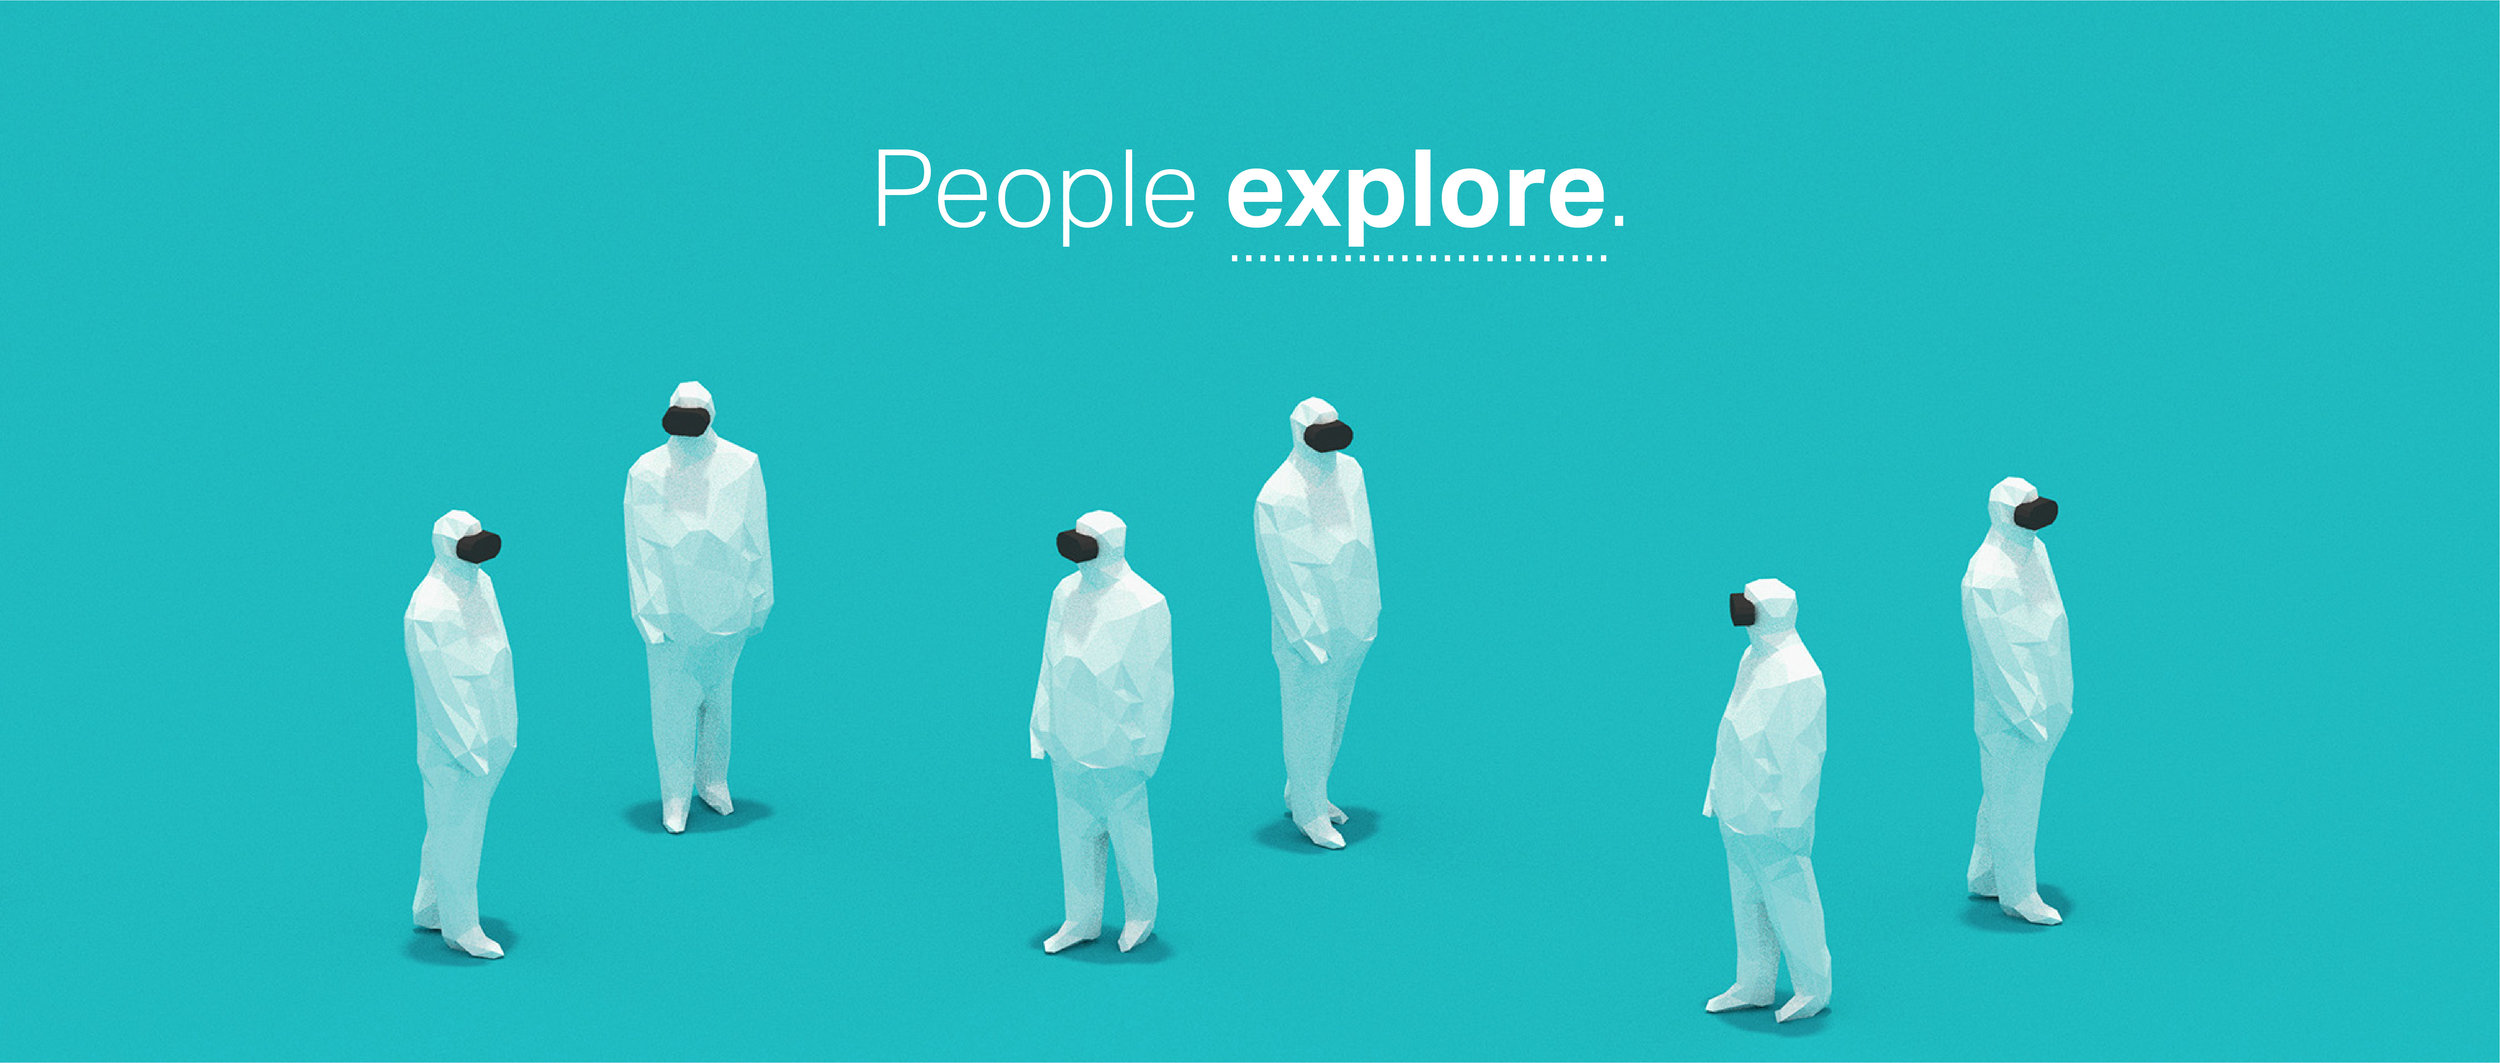 PeopleExplore-20x8.jpg